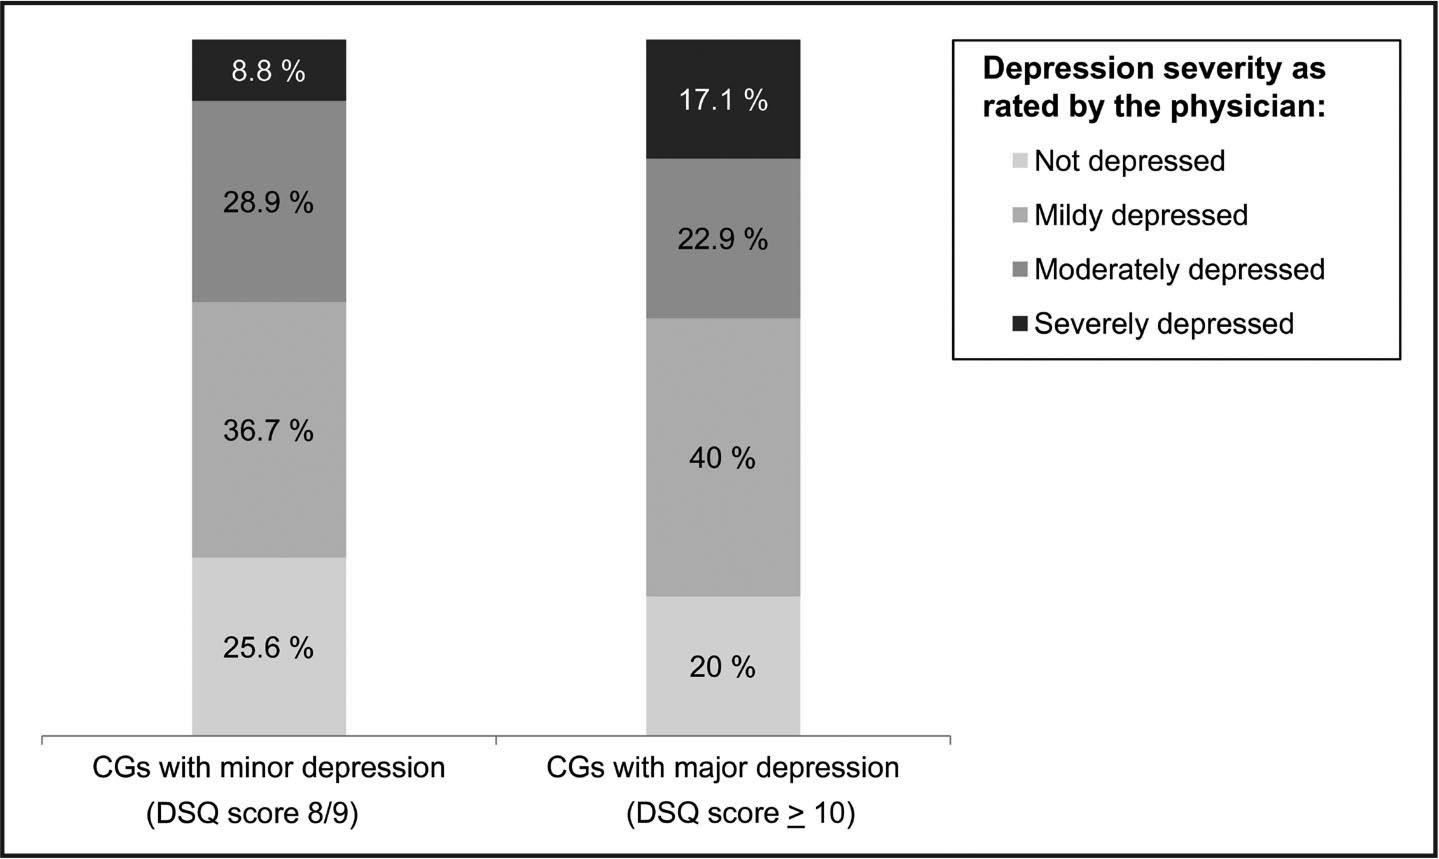 Physicians' ratings of depression severity in caregivers with a subthreshold depressive disorder (Depression Screening Questionnaire [DSQ] score of 8 or 9) or major depression (DSQ score ≥10). Note. CGs = caregivers.